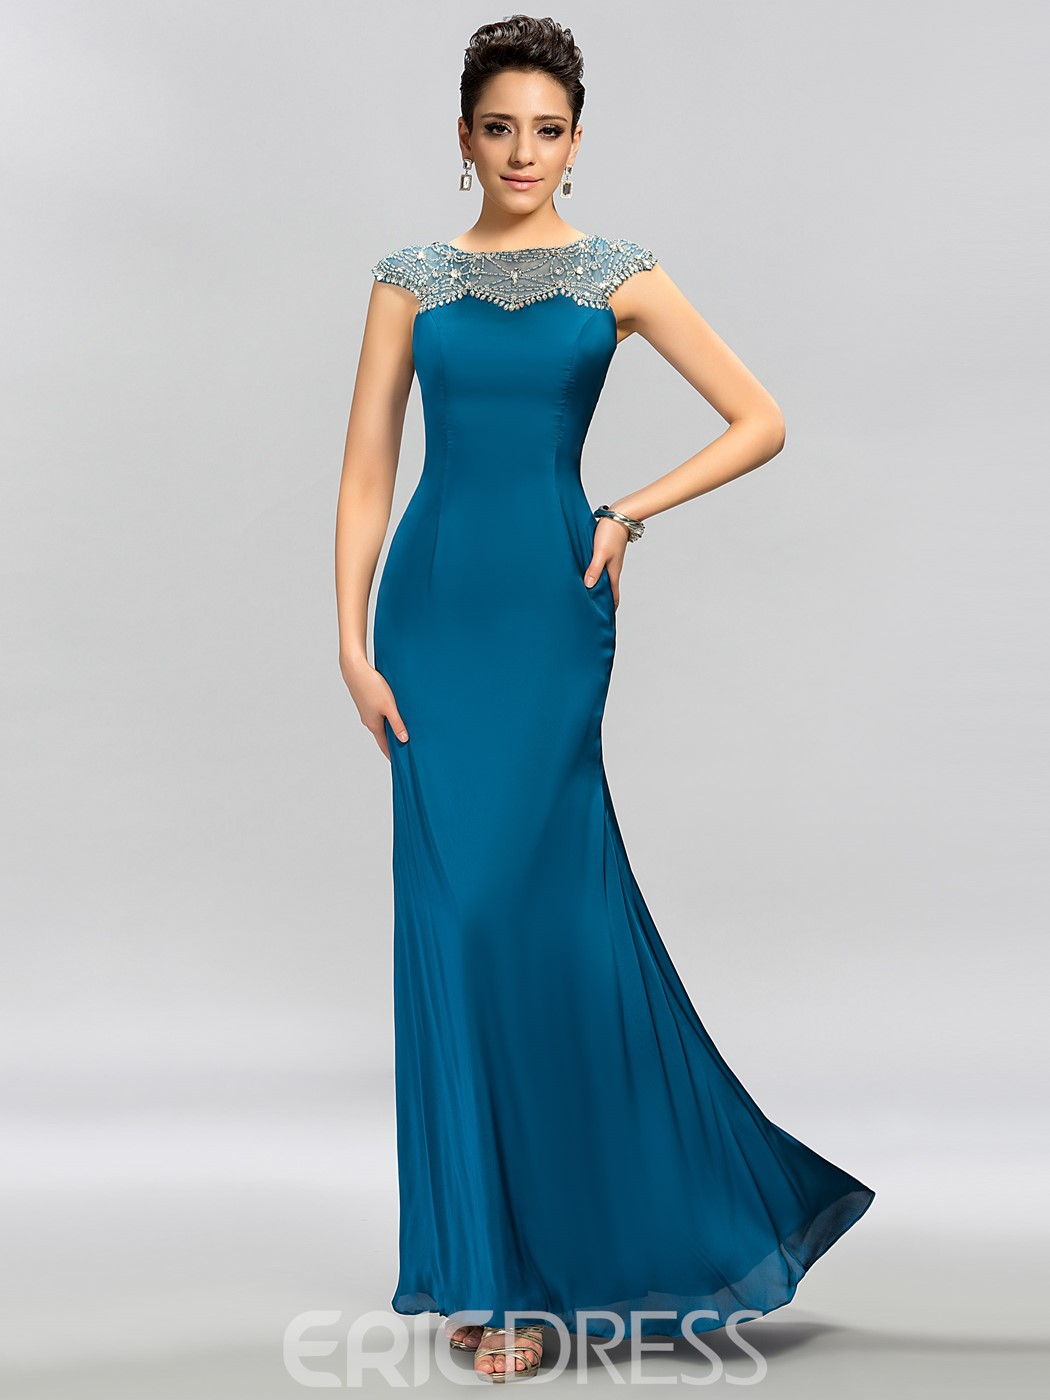 High-class Cap Sleeves Beaded Floor-Length Evening Dress